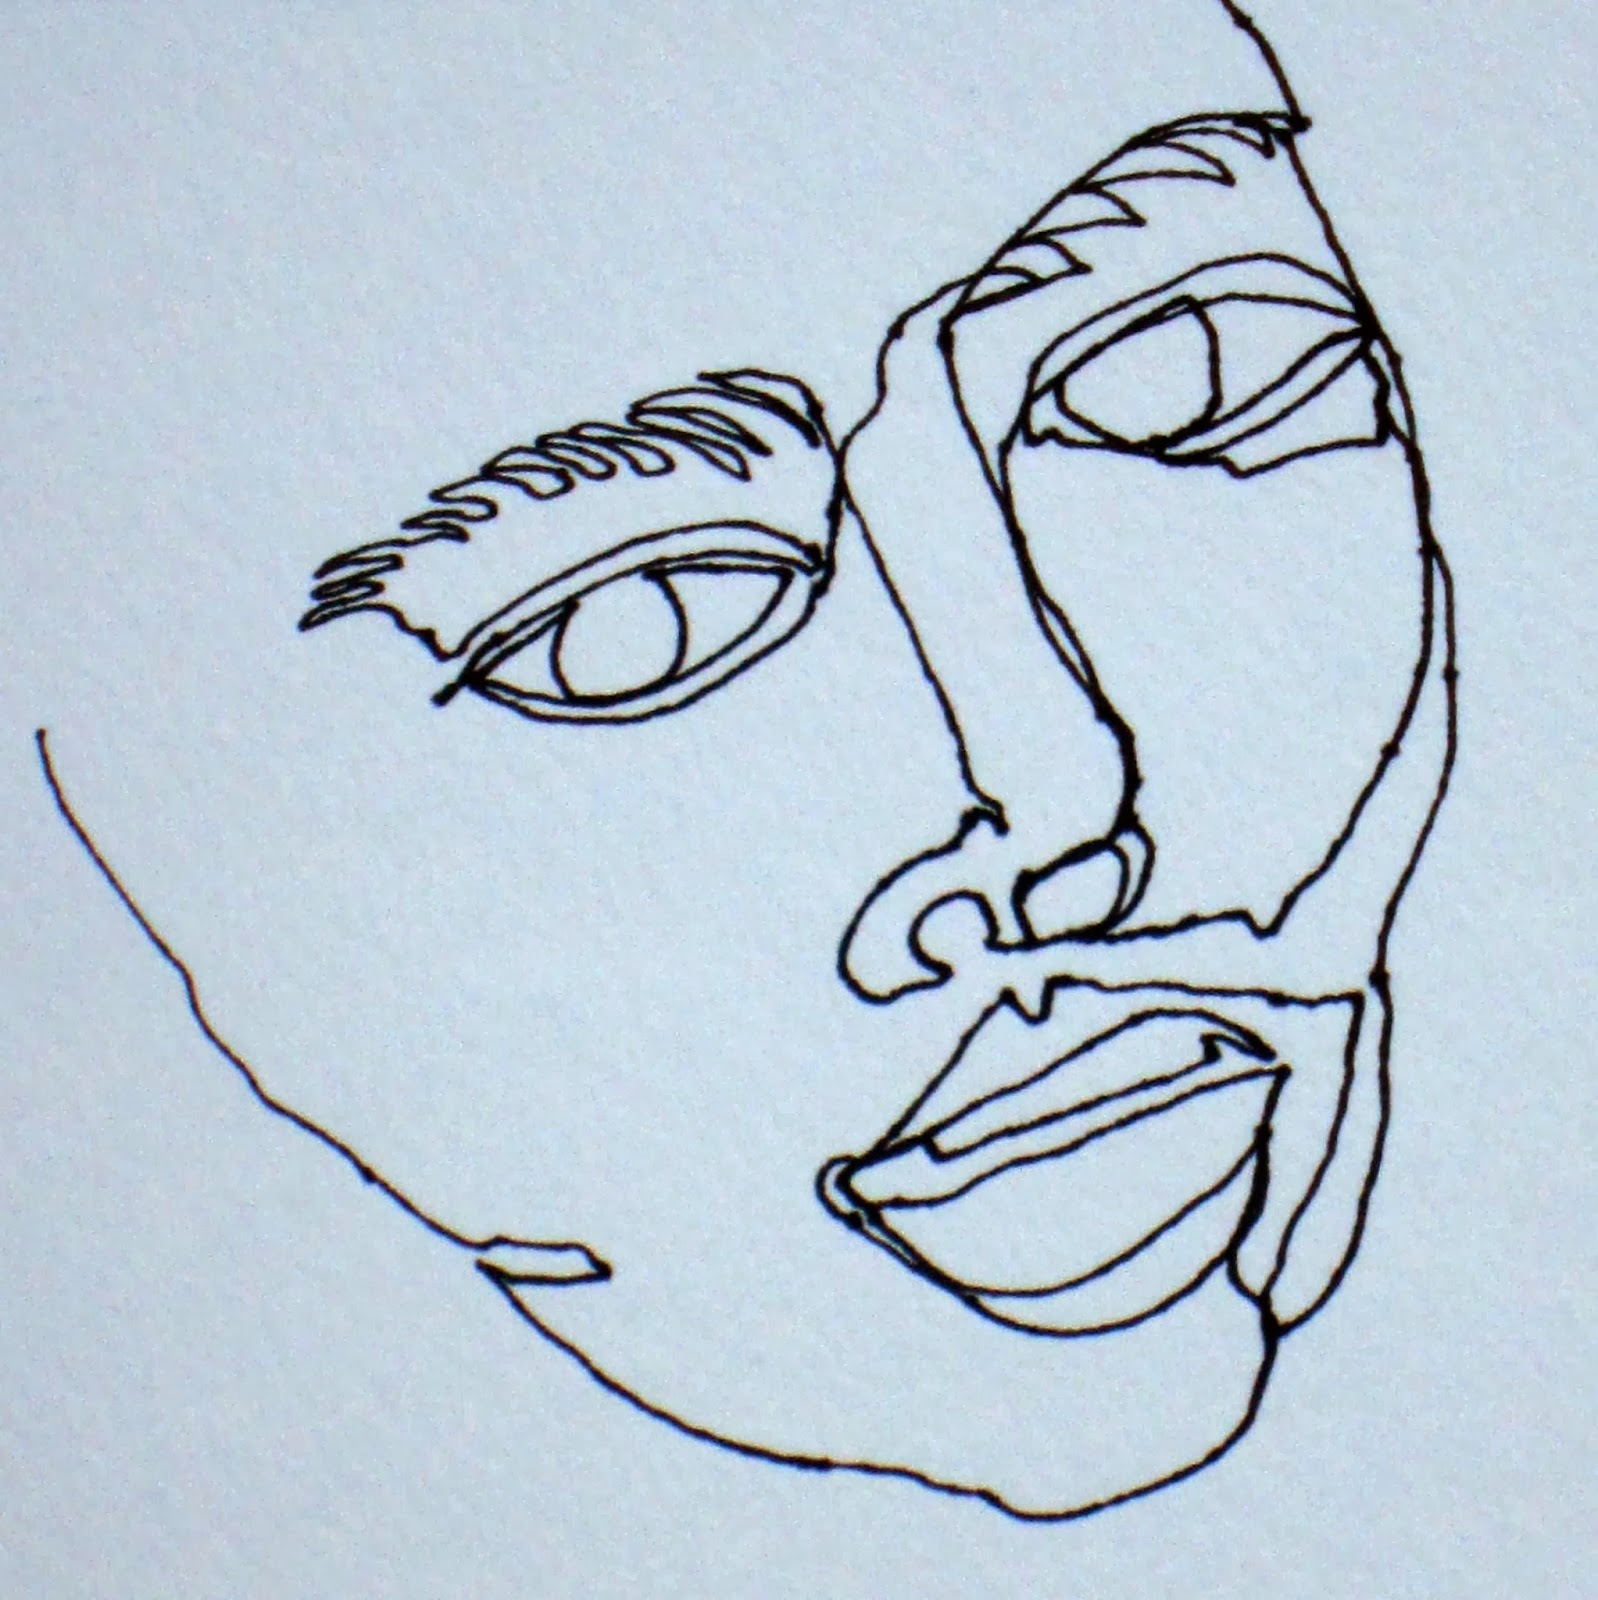 Continuous Line Drawing Of A Face : Continuous line drawing face pixshark images